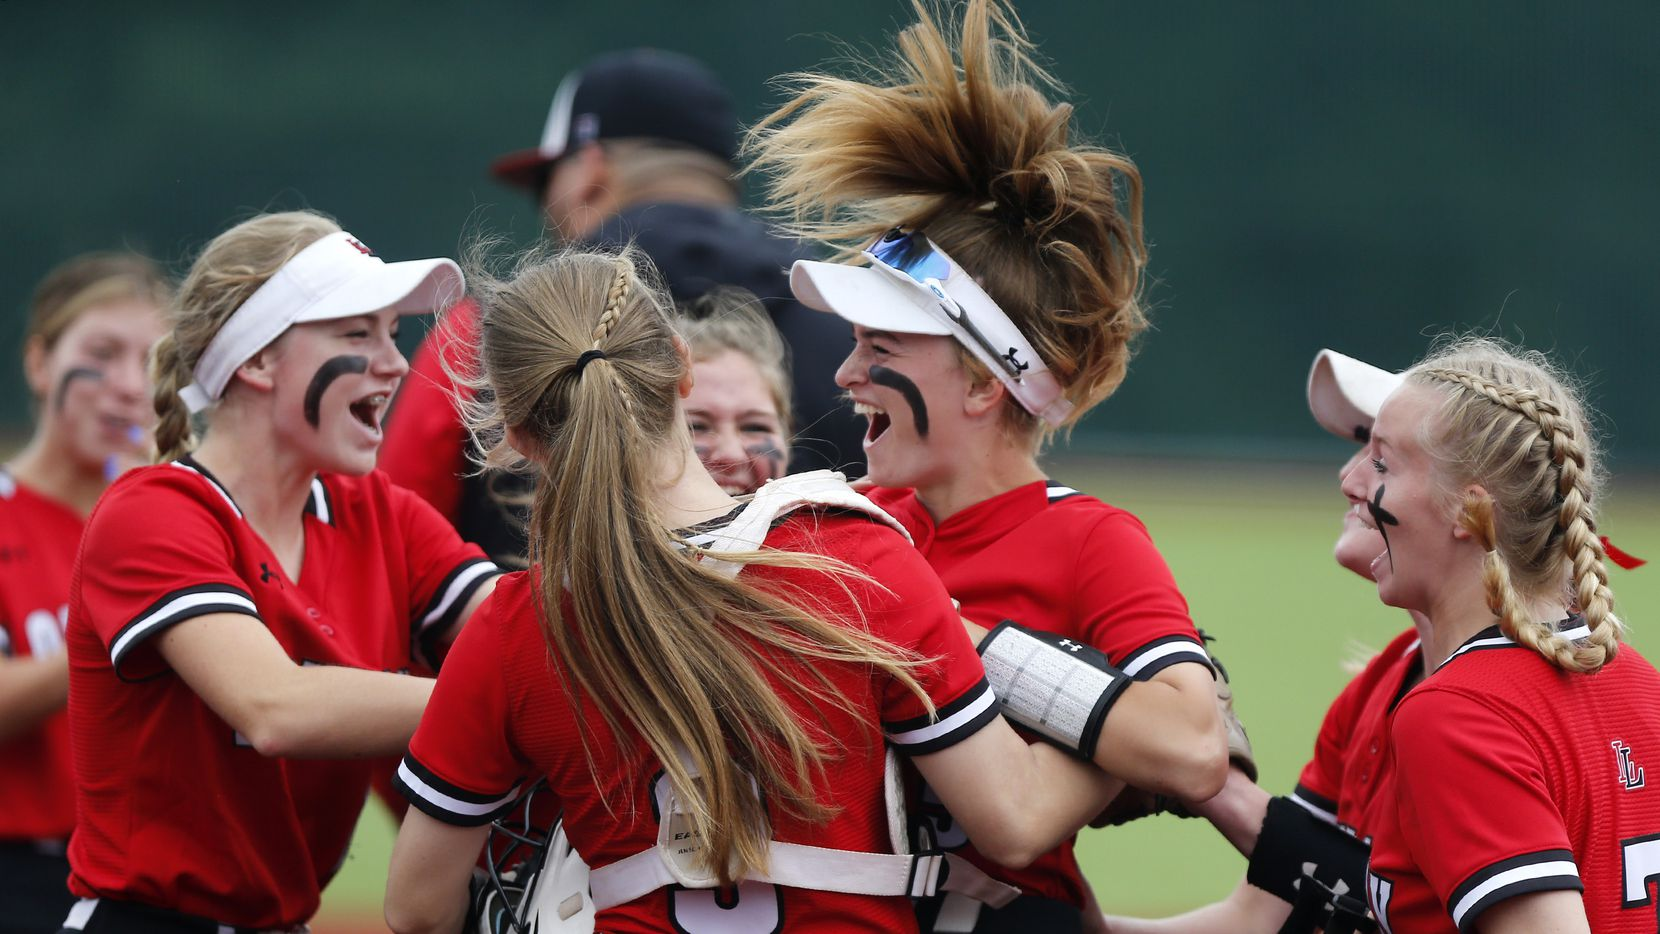 Lovejoy players celebrate with shortstop Skylar Rucker (center) after she tagged out a runner trying to steal in the first inning of Lovejoy's 4-0 win over Frisco Wakeland on Saturday in Game 3 of a best-of-3 Class 5A first-round playoff series.